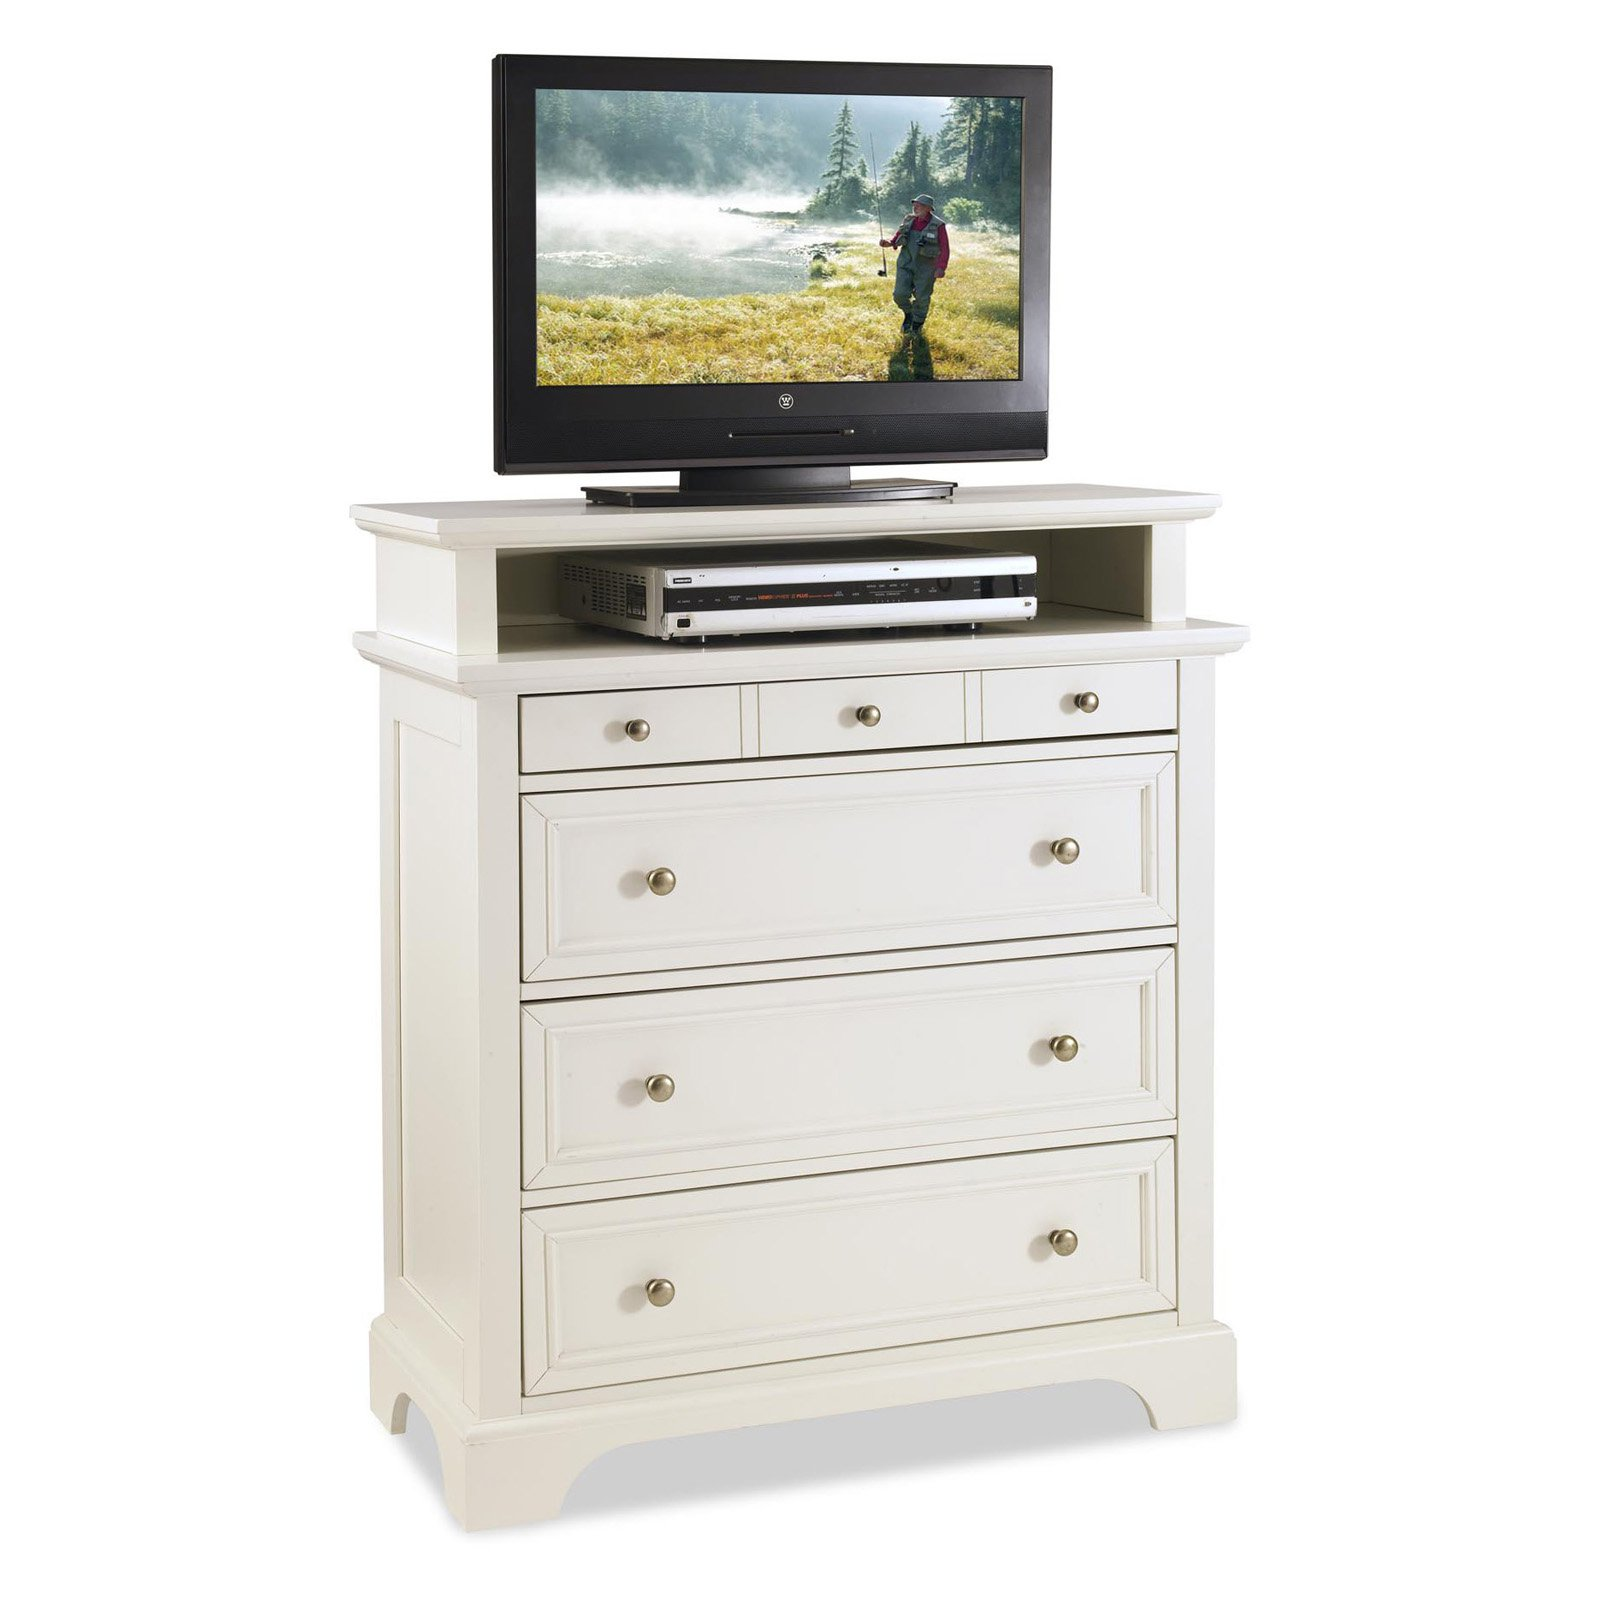 Home Styles Naples 6 Drawer Media Chest - White - Walmart.com